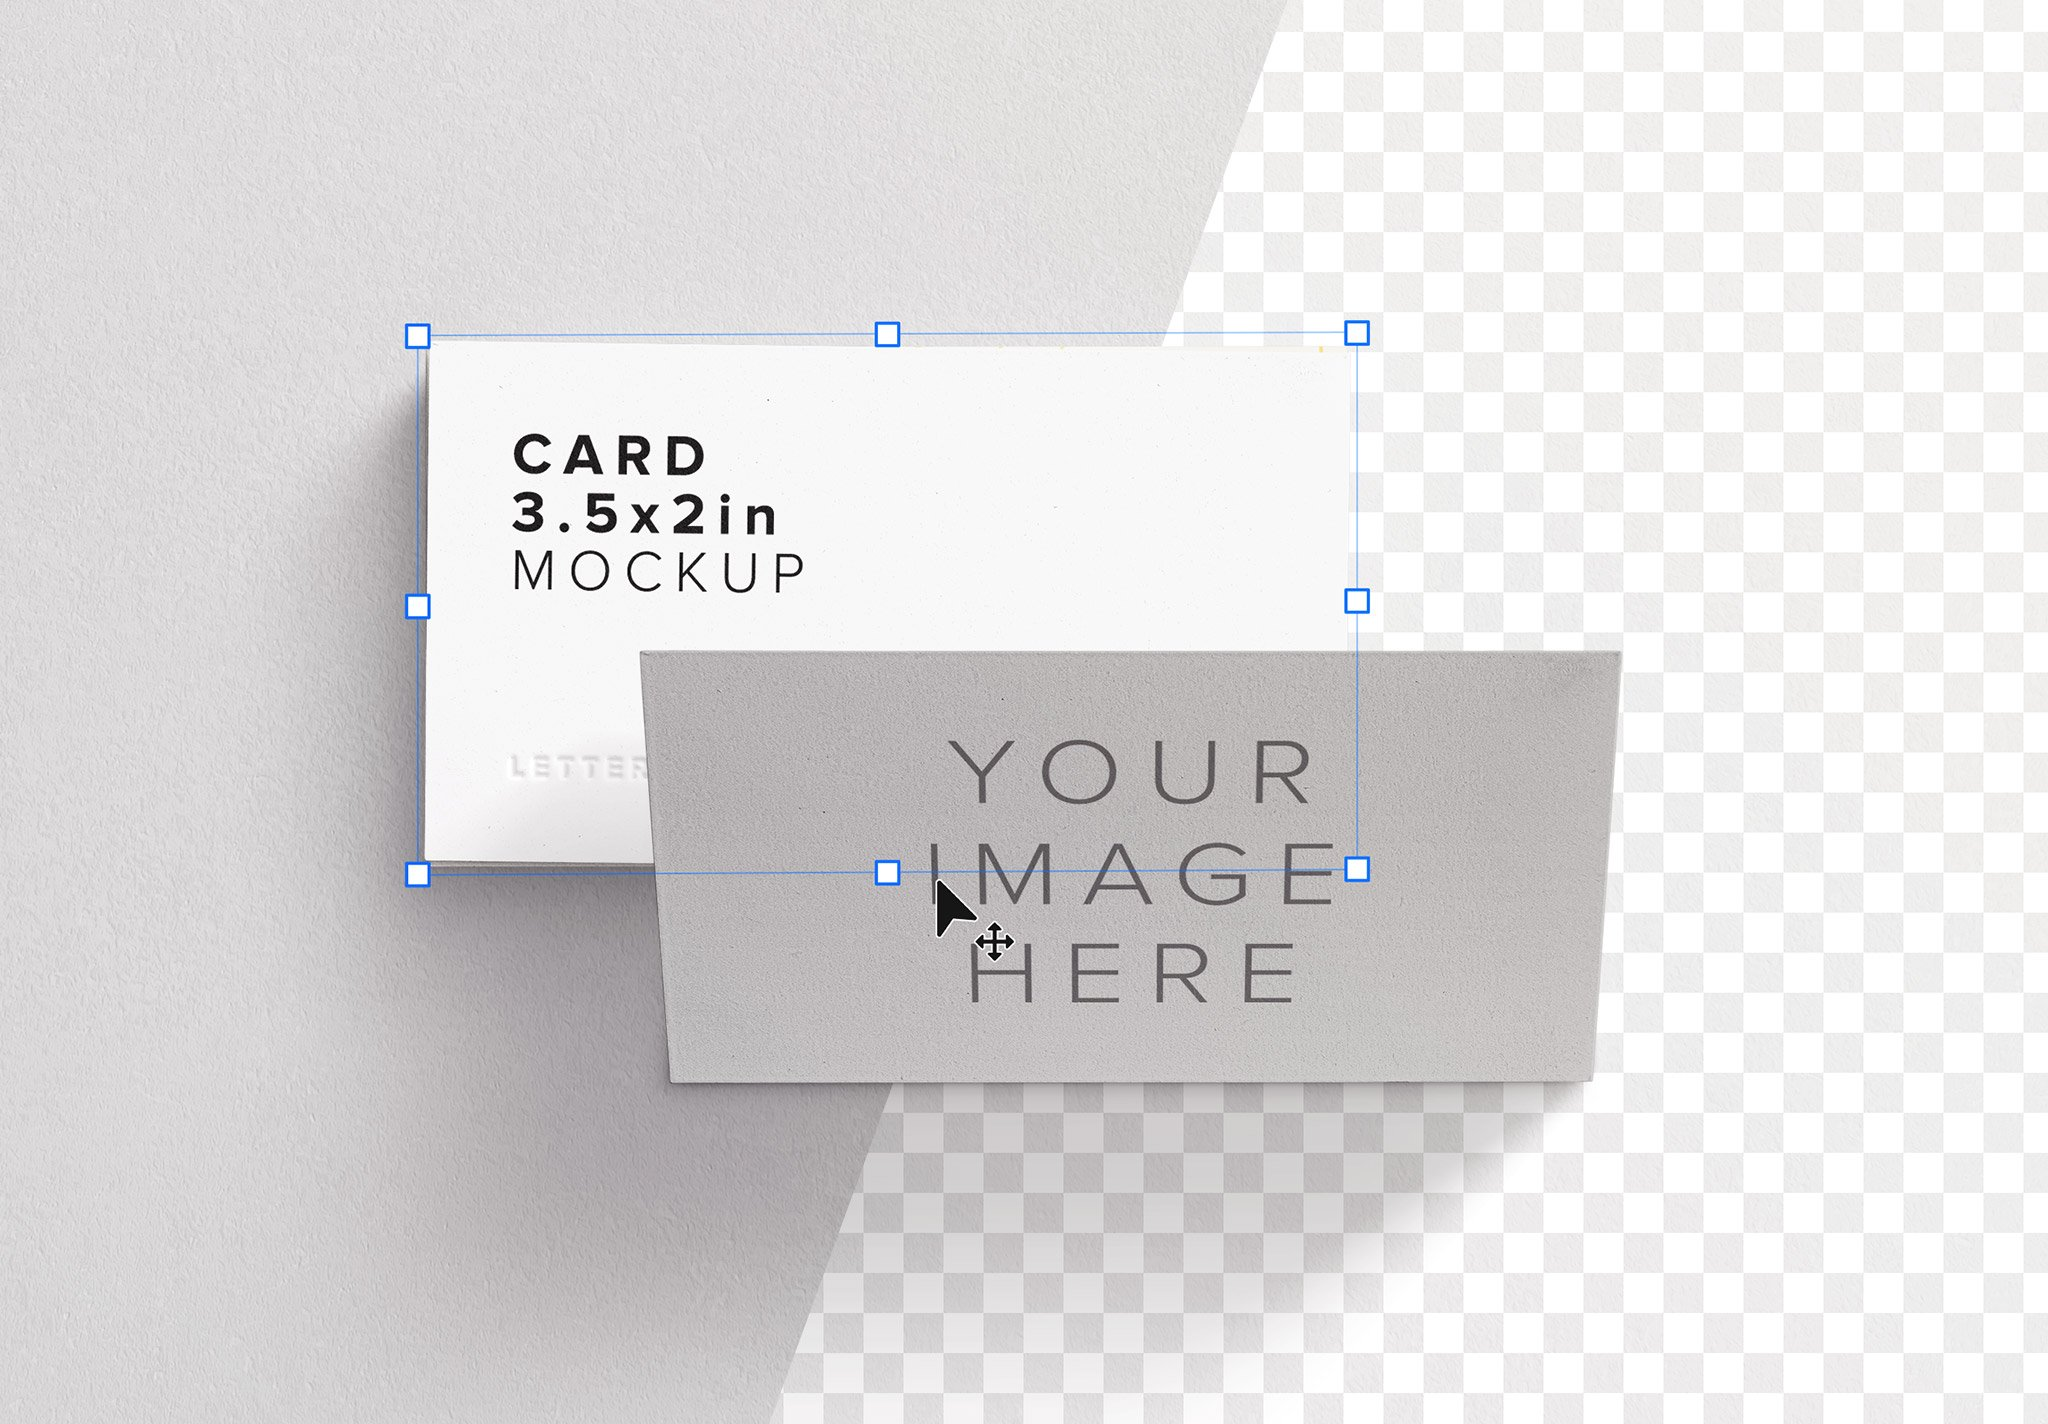 business cards layout 2 image01